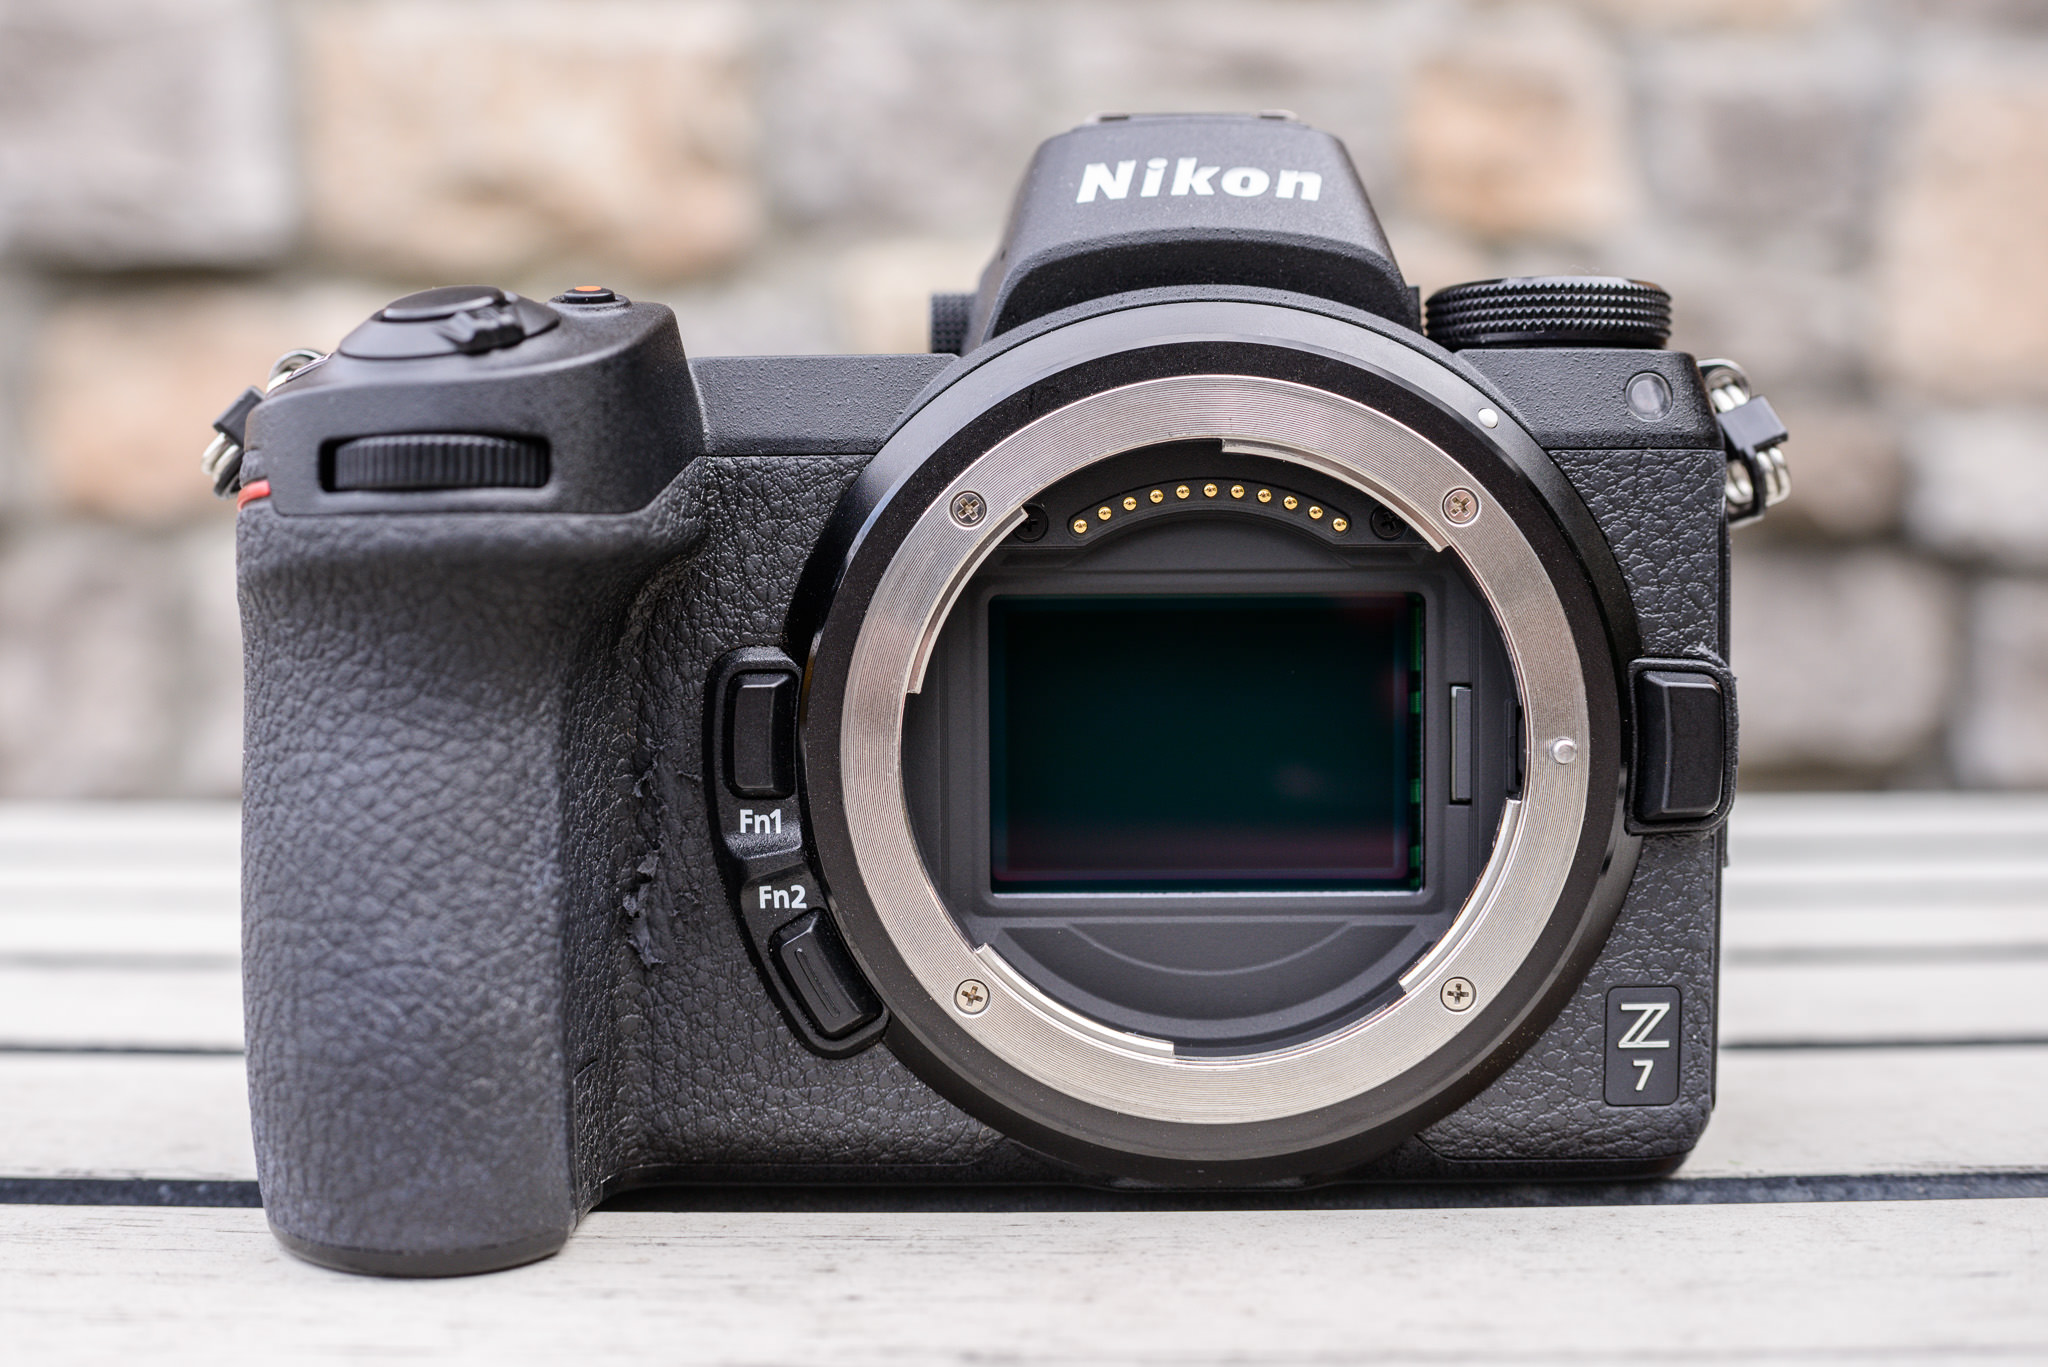 Nikon Z7 Review - Camera Construction and Handling (Page 2